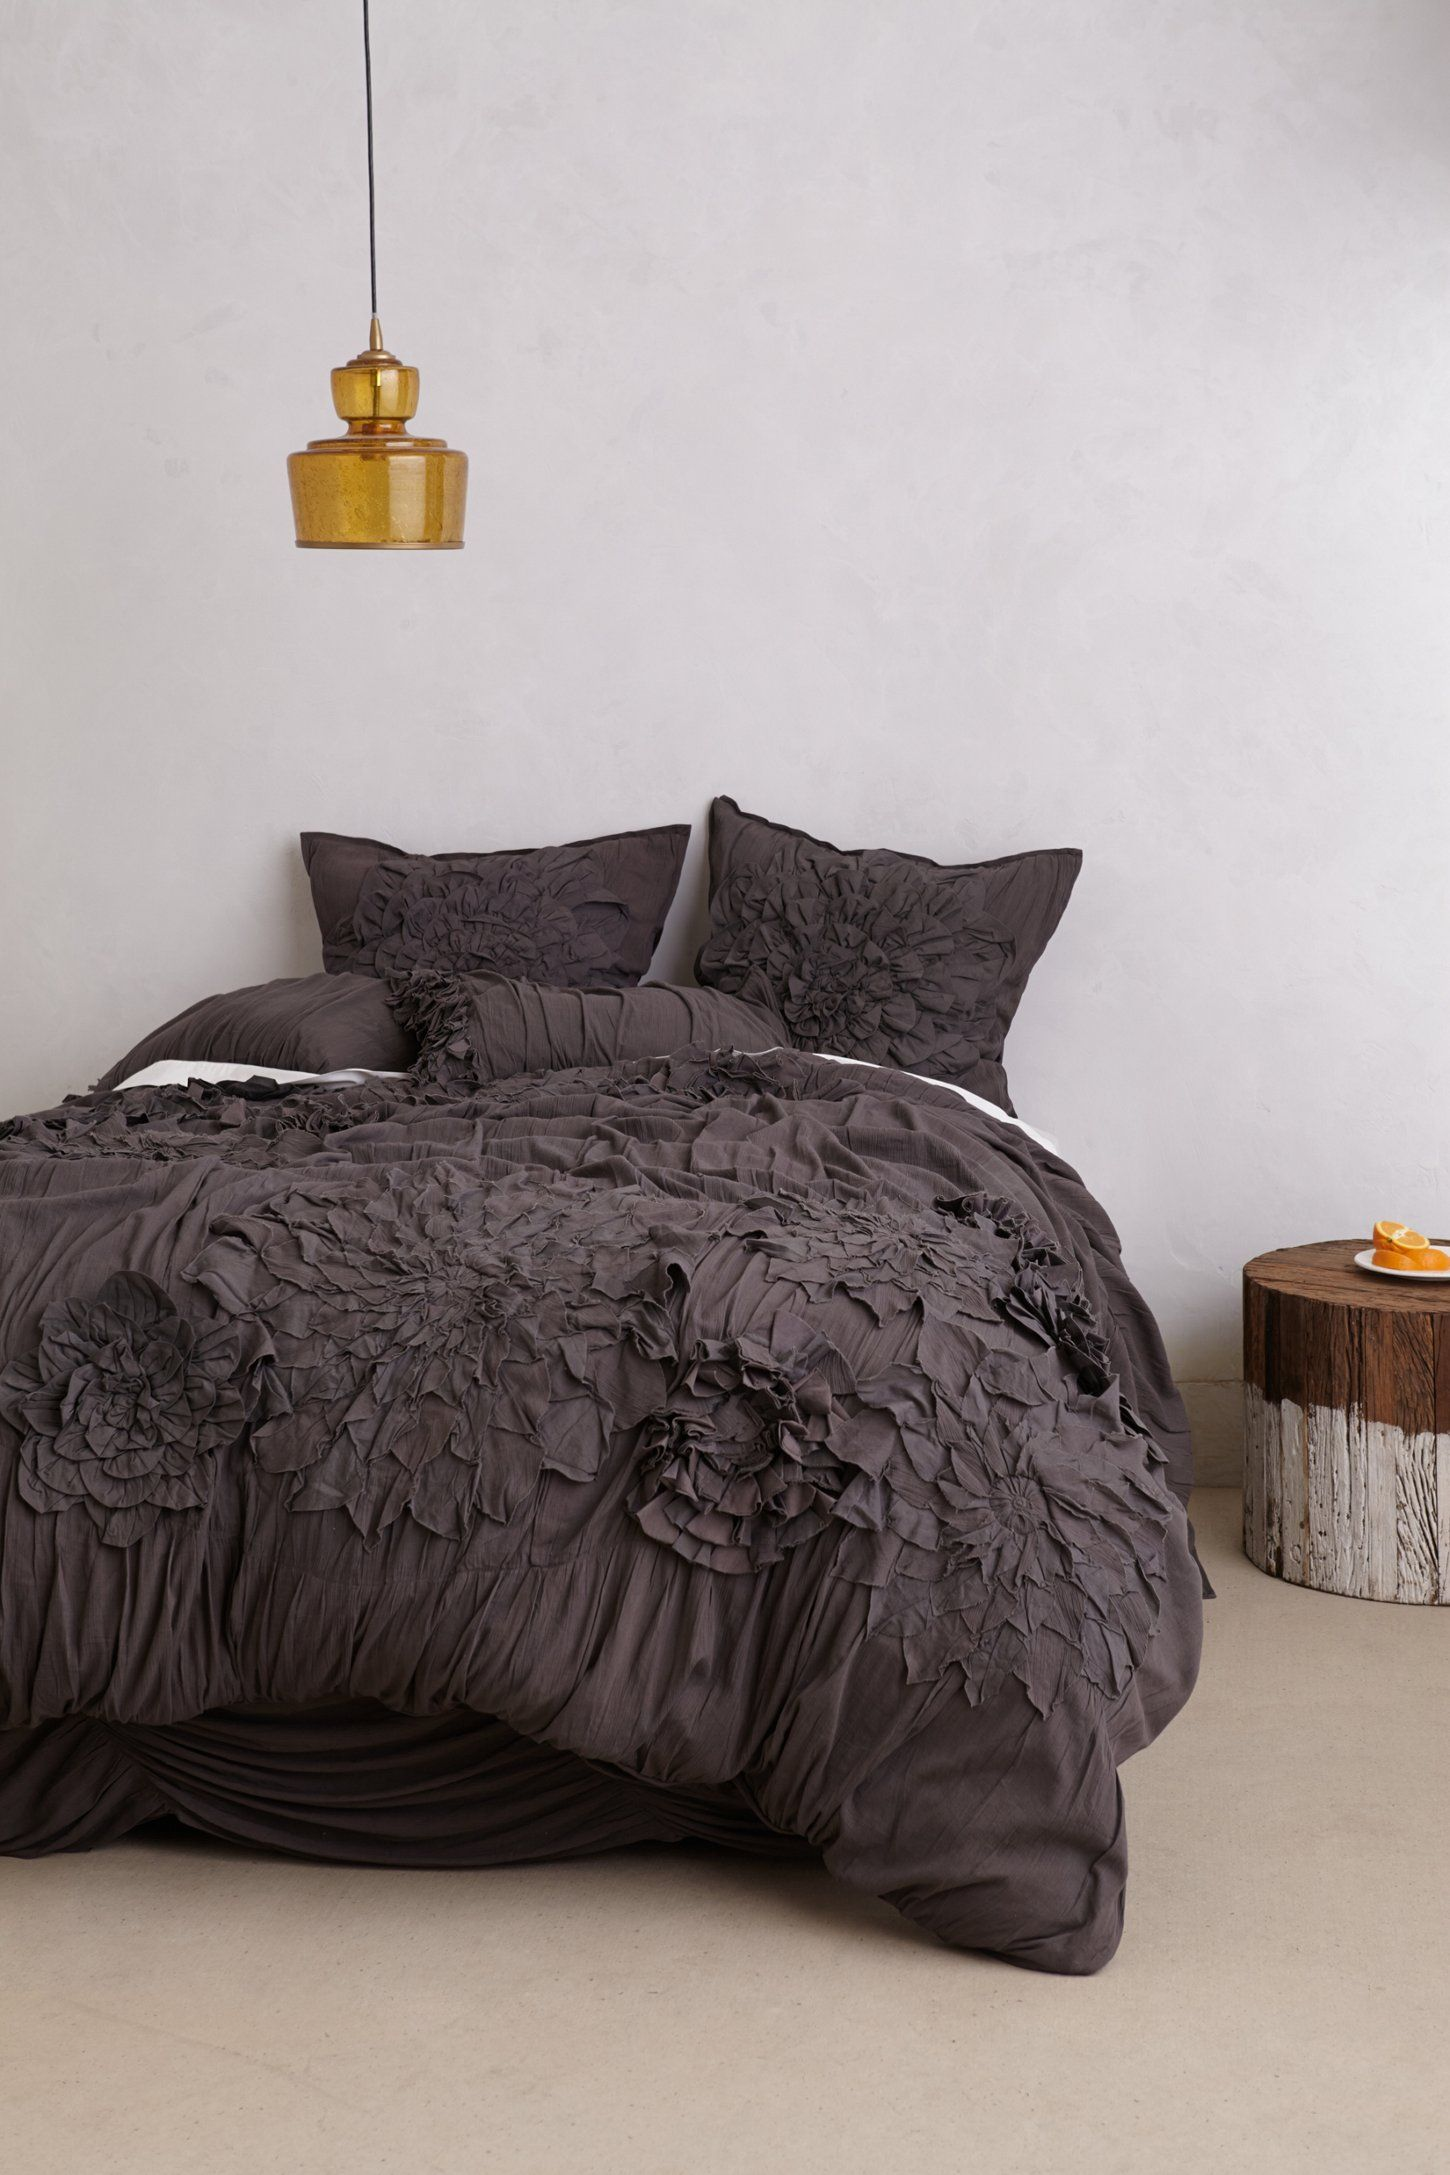 This Bed Set Totally Says Helena Bonham Carter To Me I Like It Cheap Bed Sheets Bed Bedding Sets